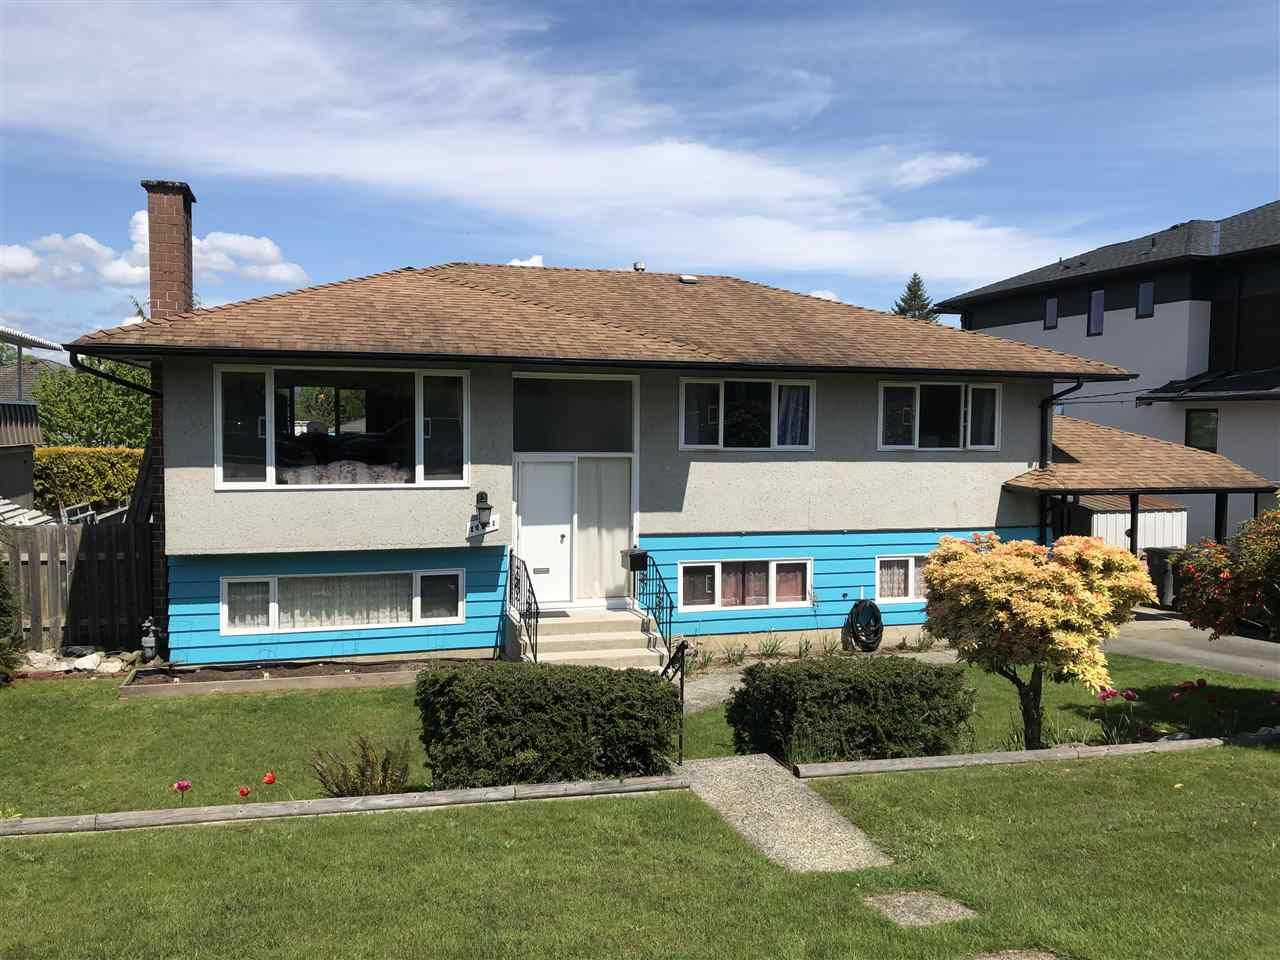 Main Photo: 14721 111A Avenue in Surrey: Bolivar Heights House for sale (North Surrey)  : MLS®# R2453893